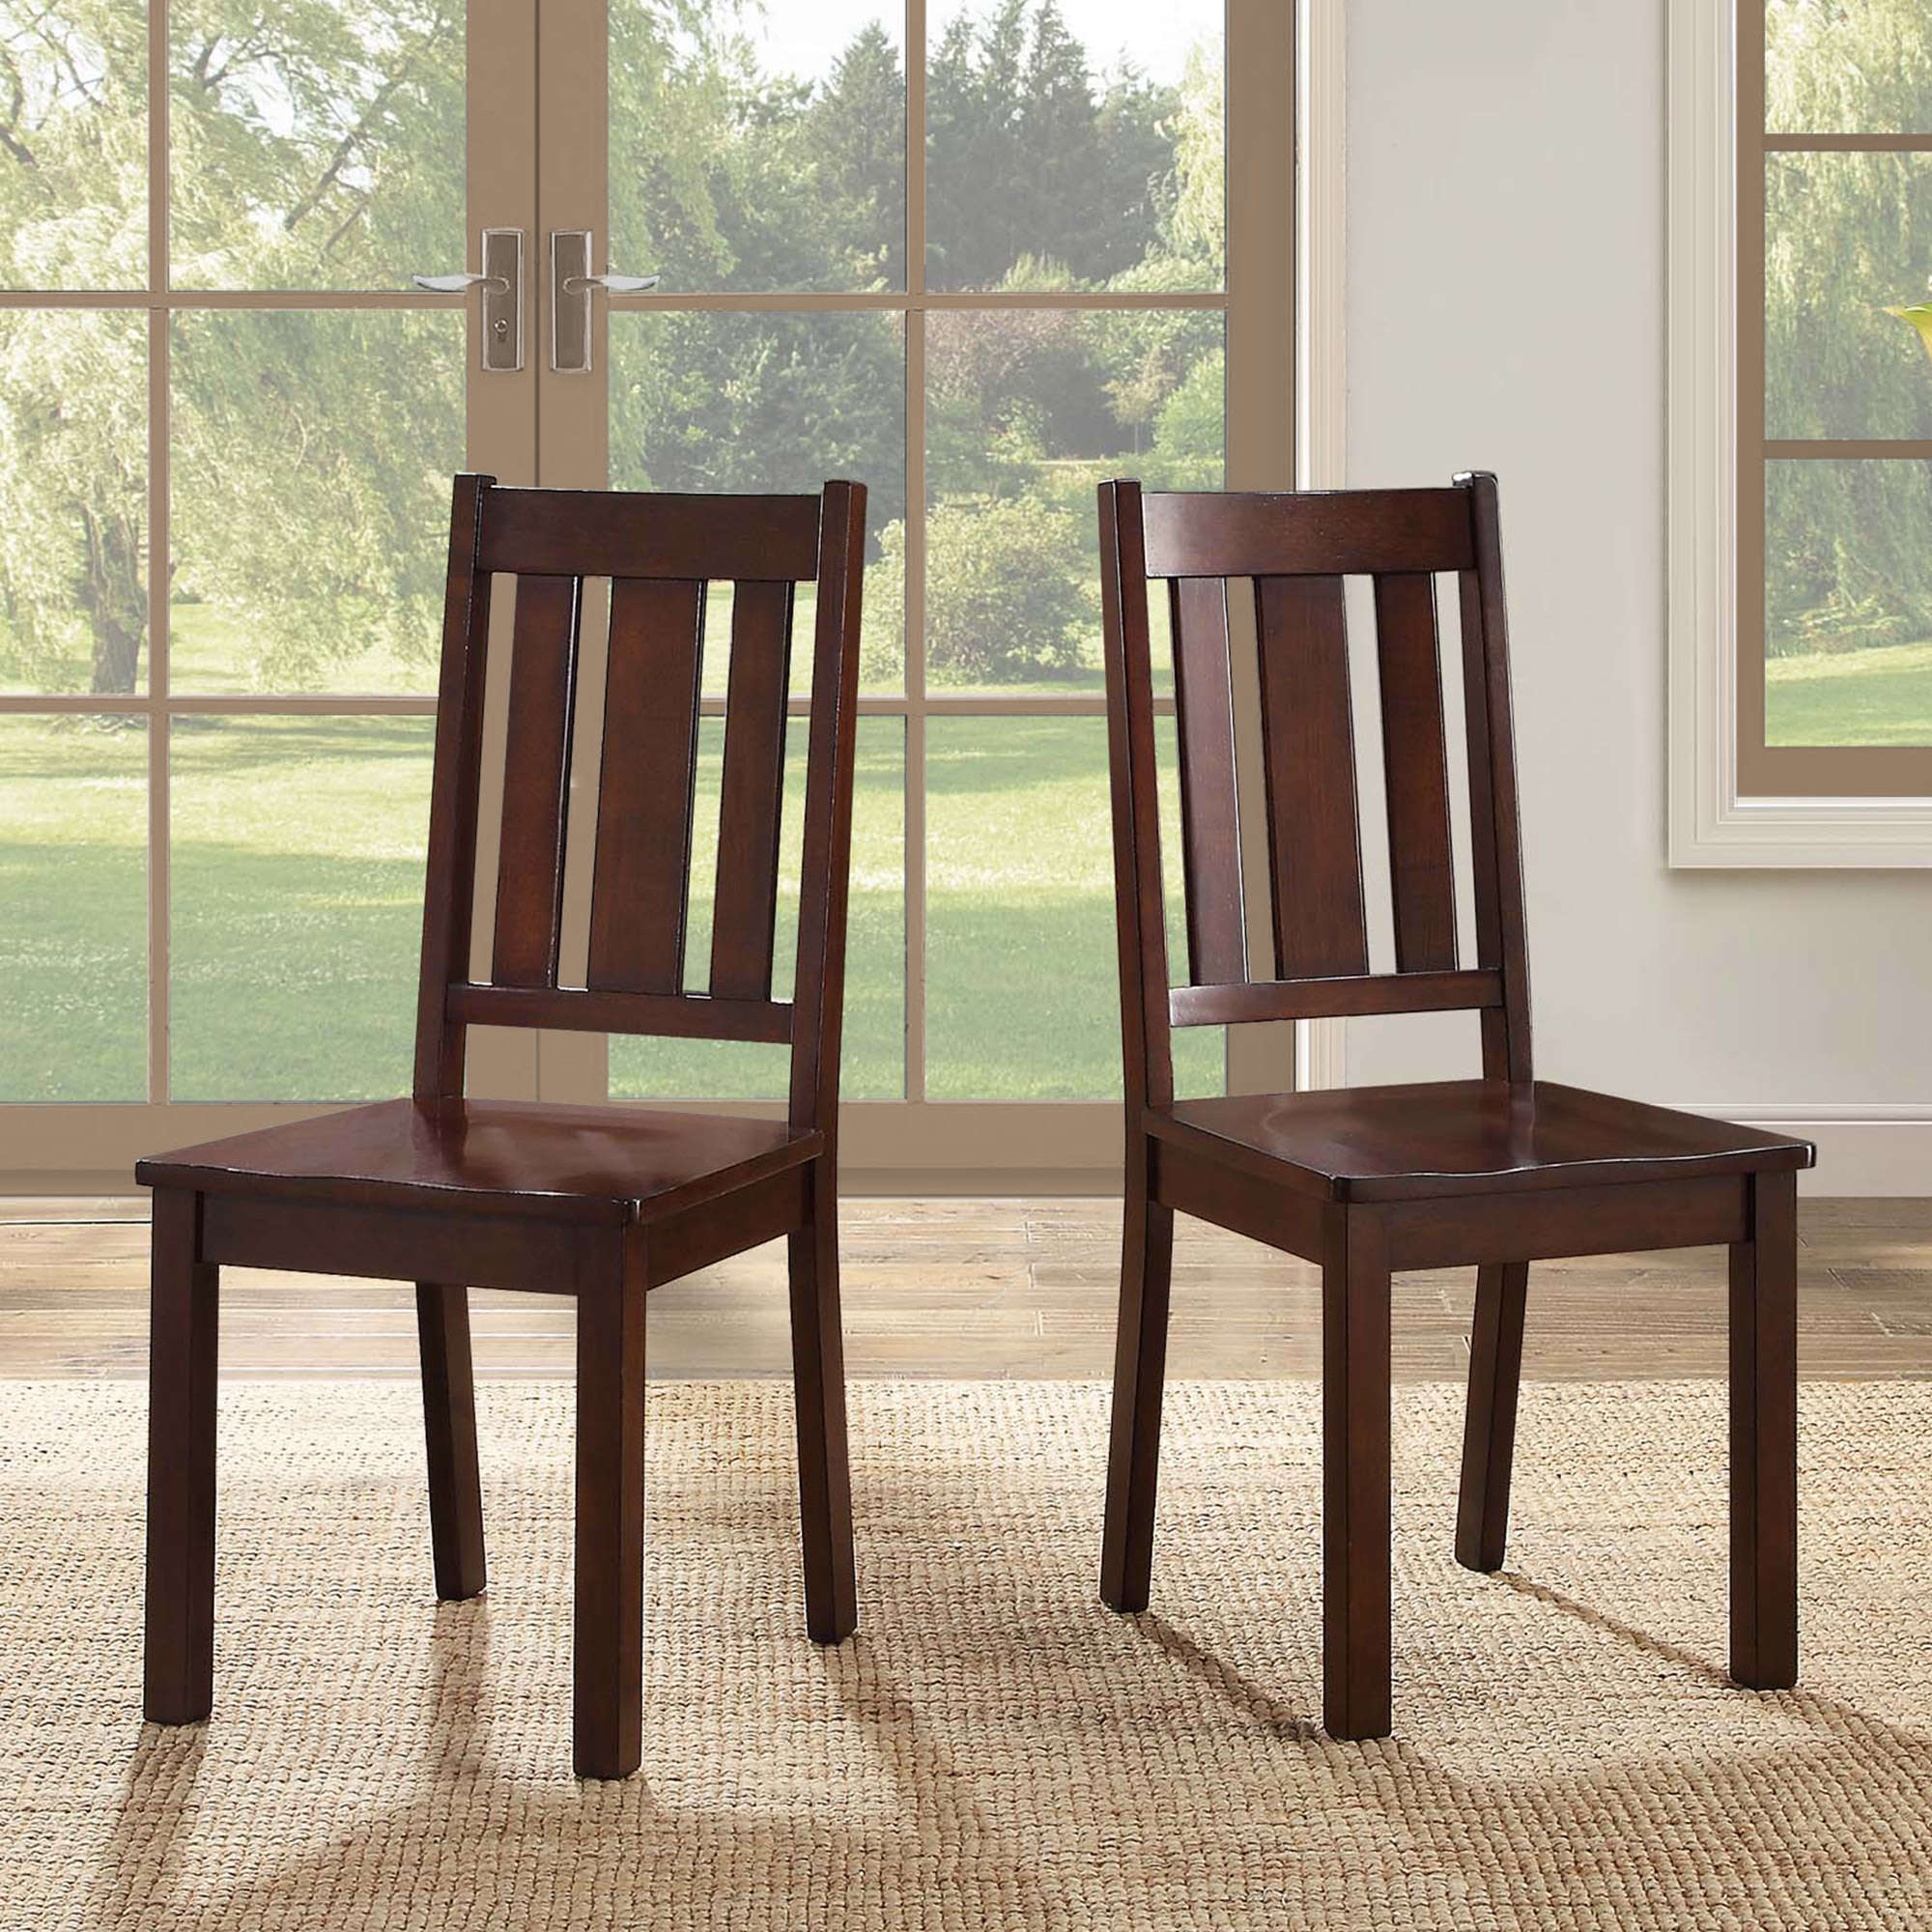 Better Homes and Gardens Bankston Dining Chairs, Set of 2, Mocha by